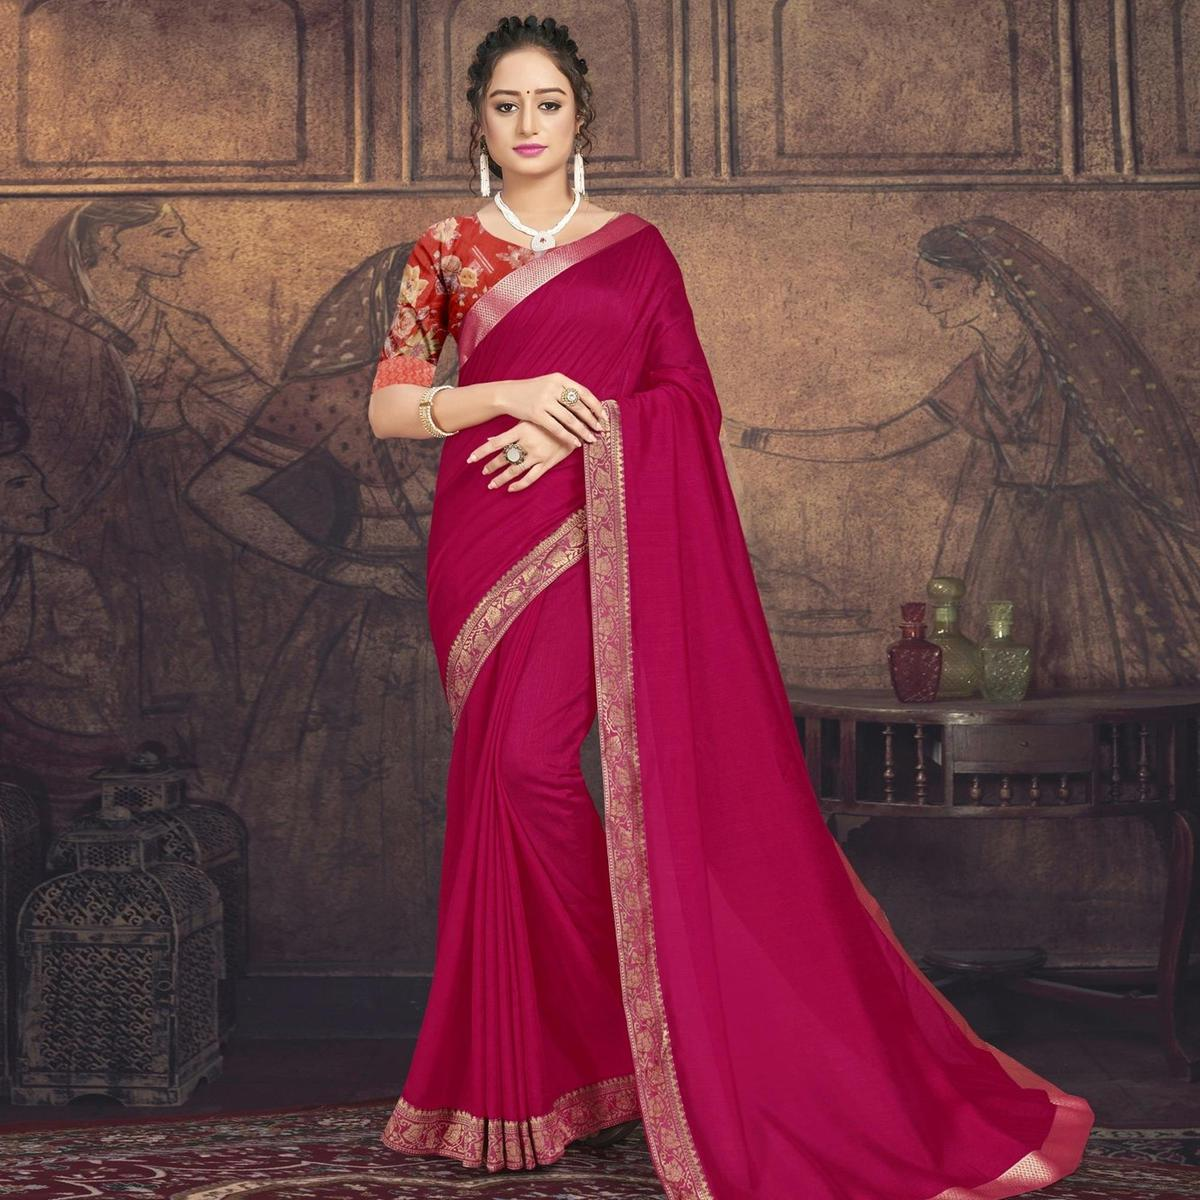 Triveni Pink Colored Chanderi Silk Casual Wear Solid Saree With Blouse Piece